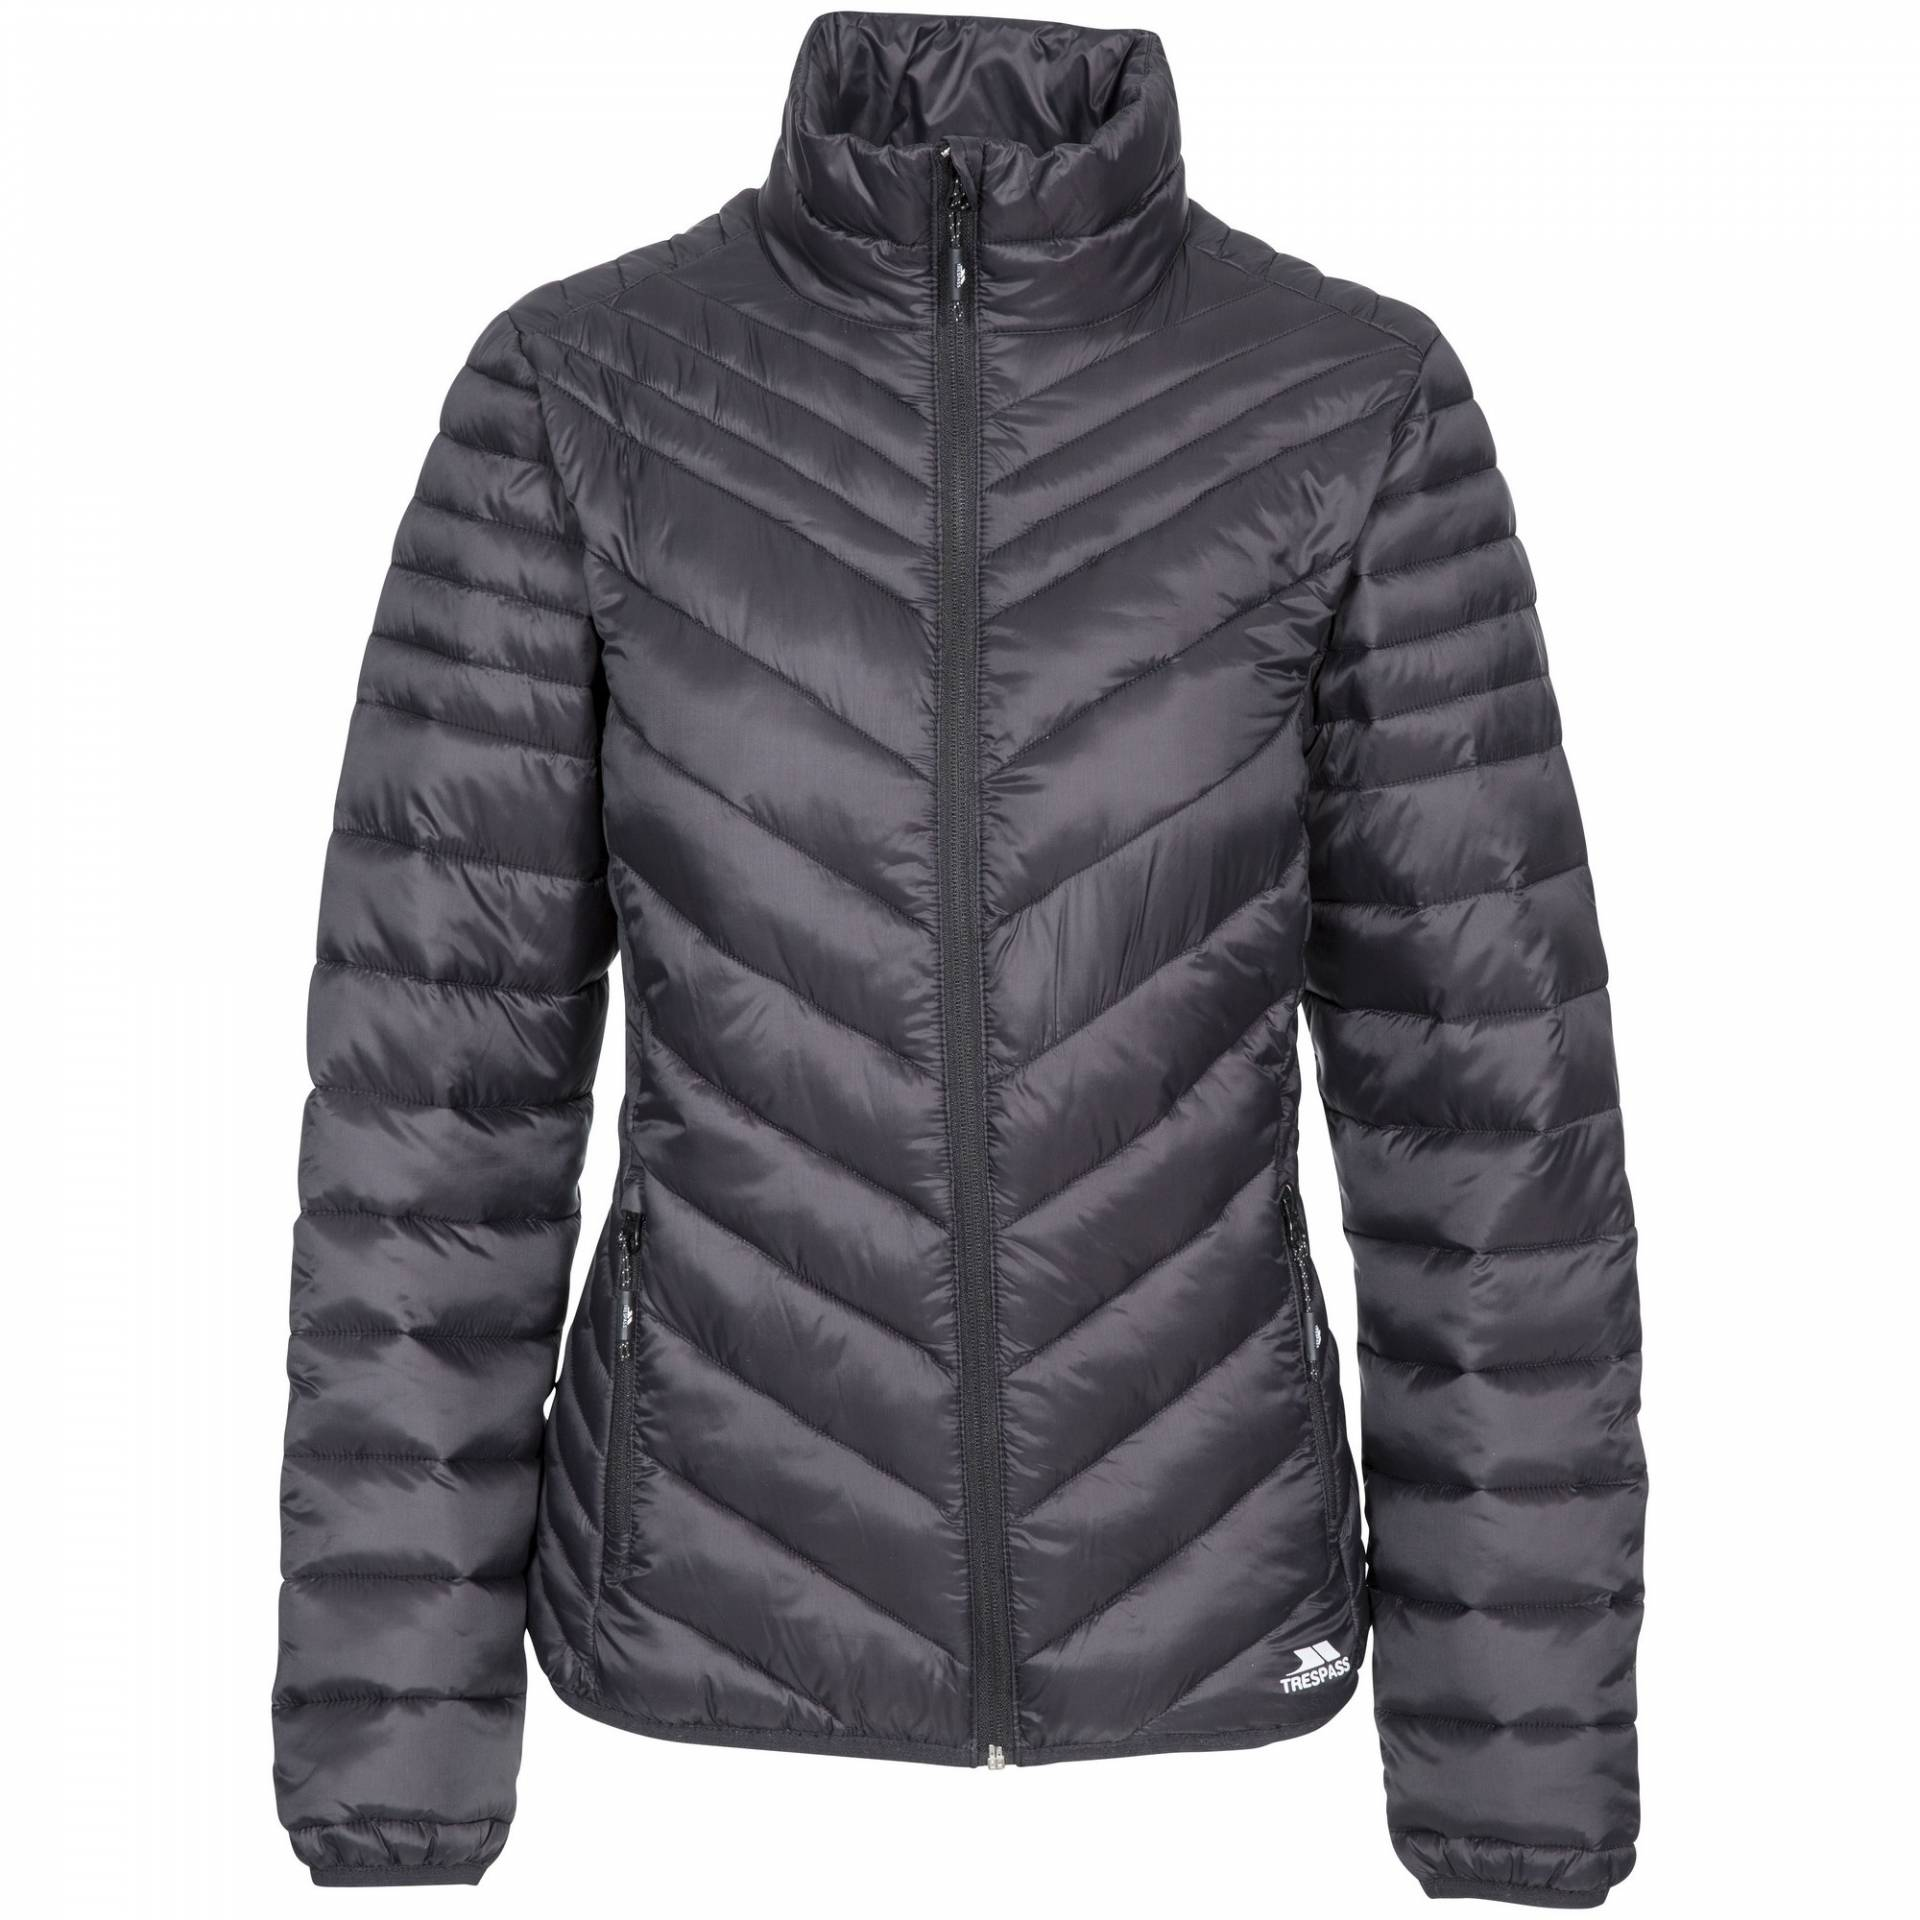 Trespass Steppjacke »Damen Simara« von Trespass